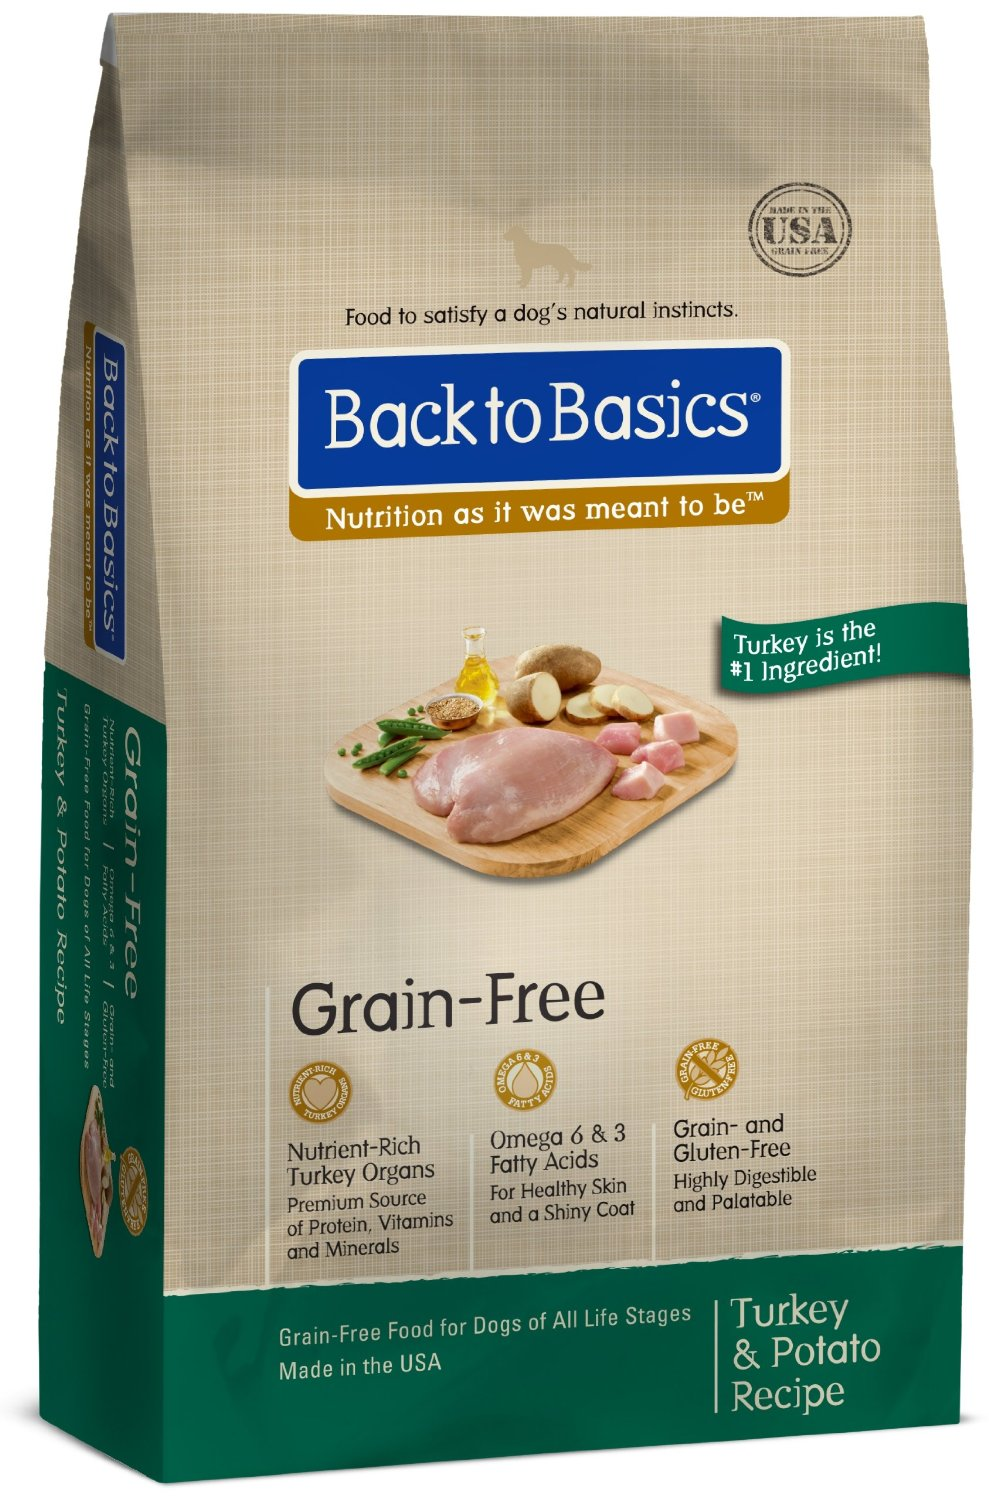 Back to Basics Turkey & Potato Grain Free Dog Food